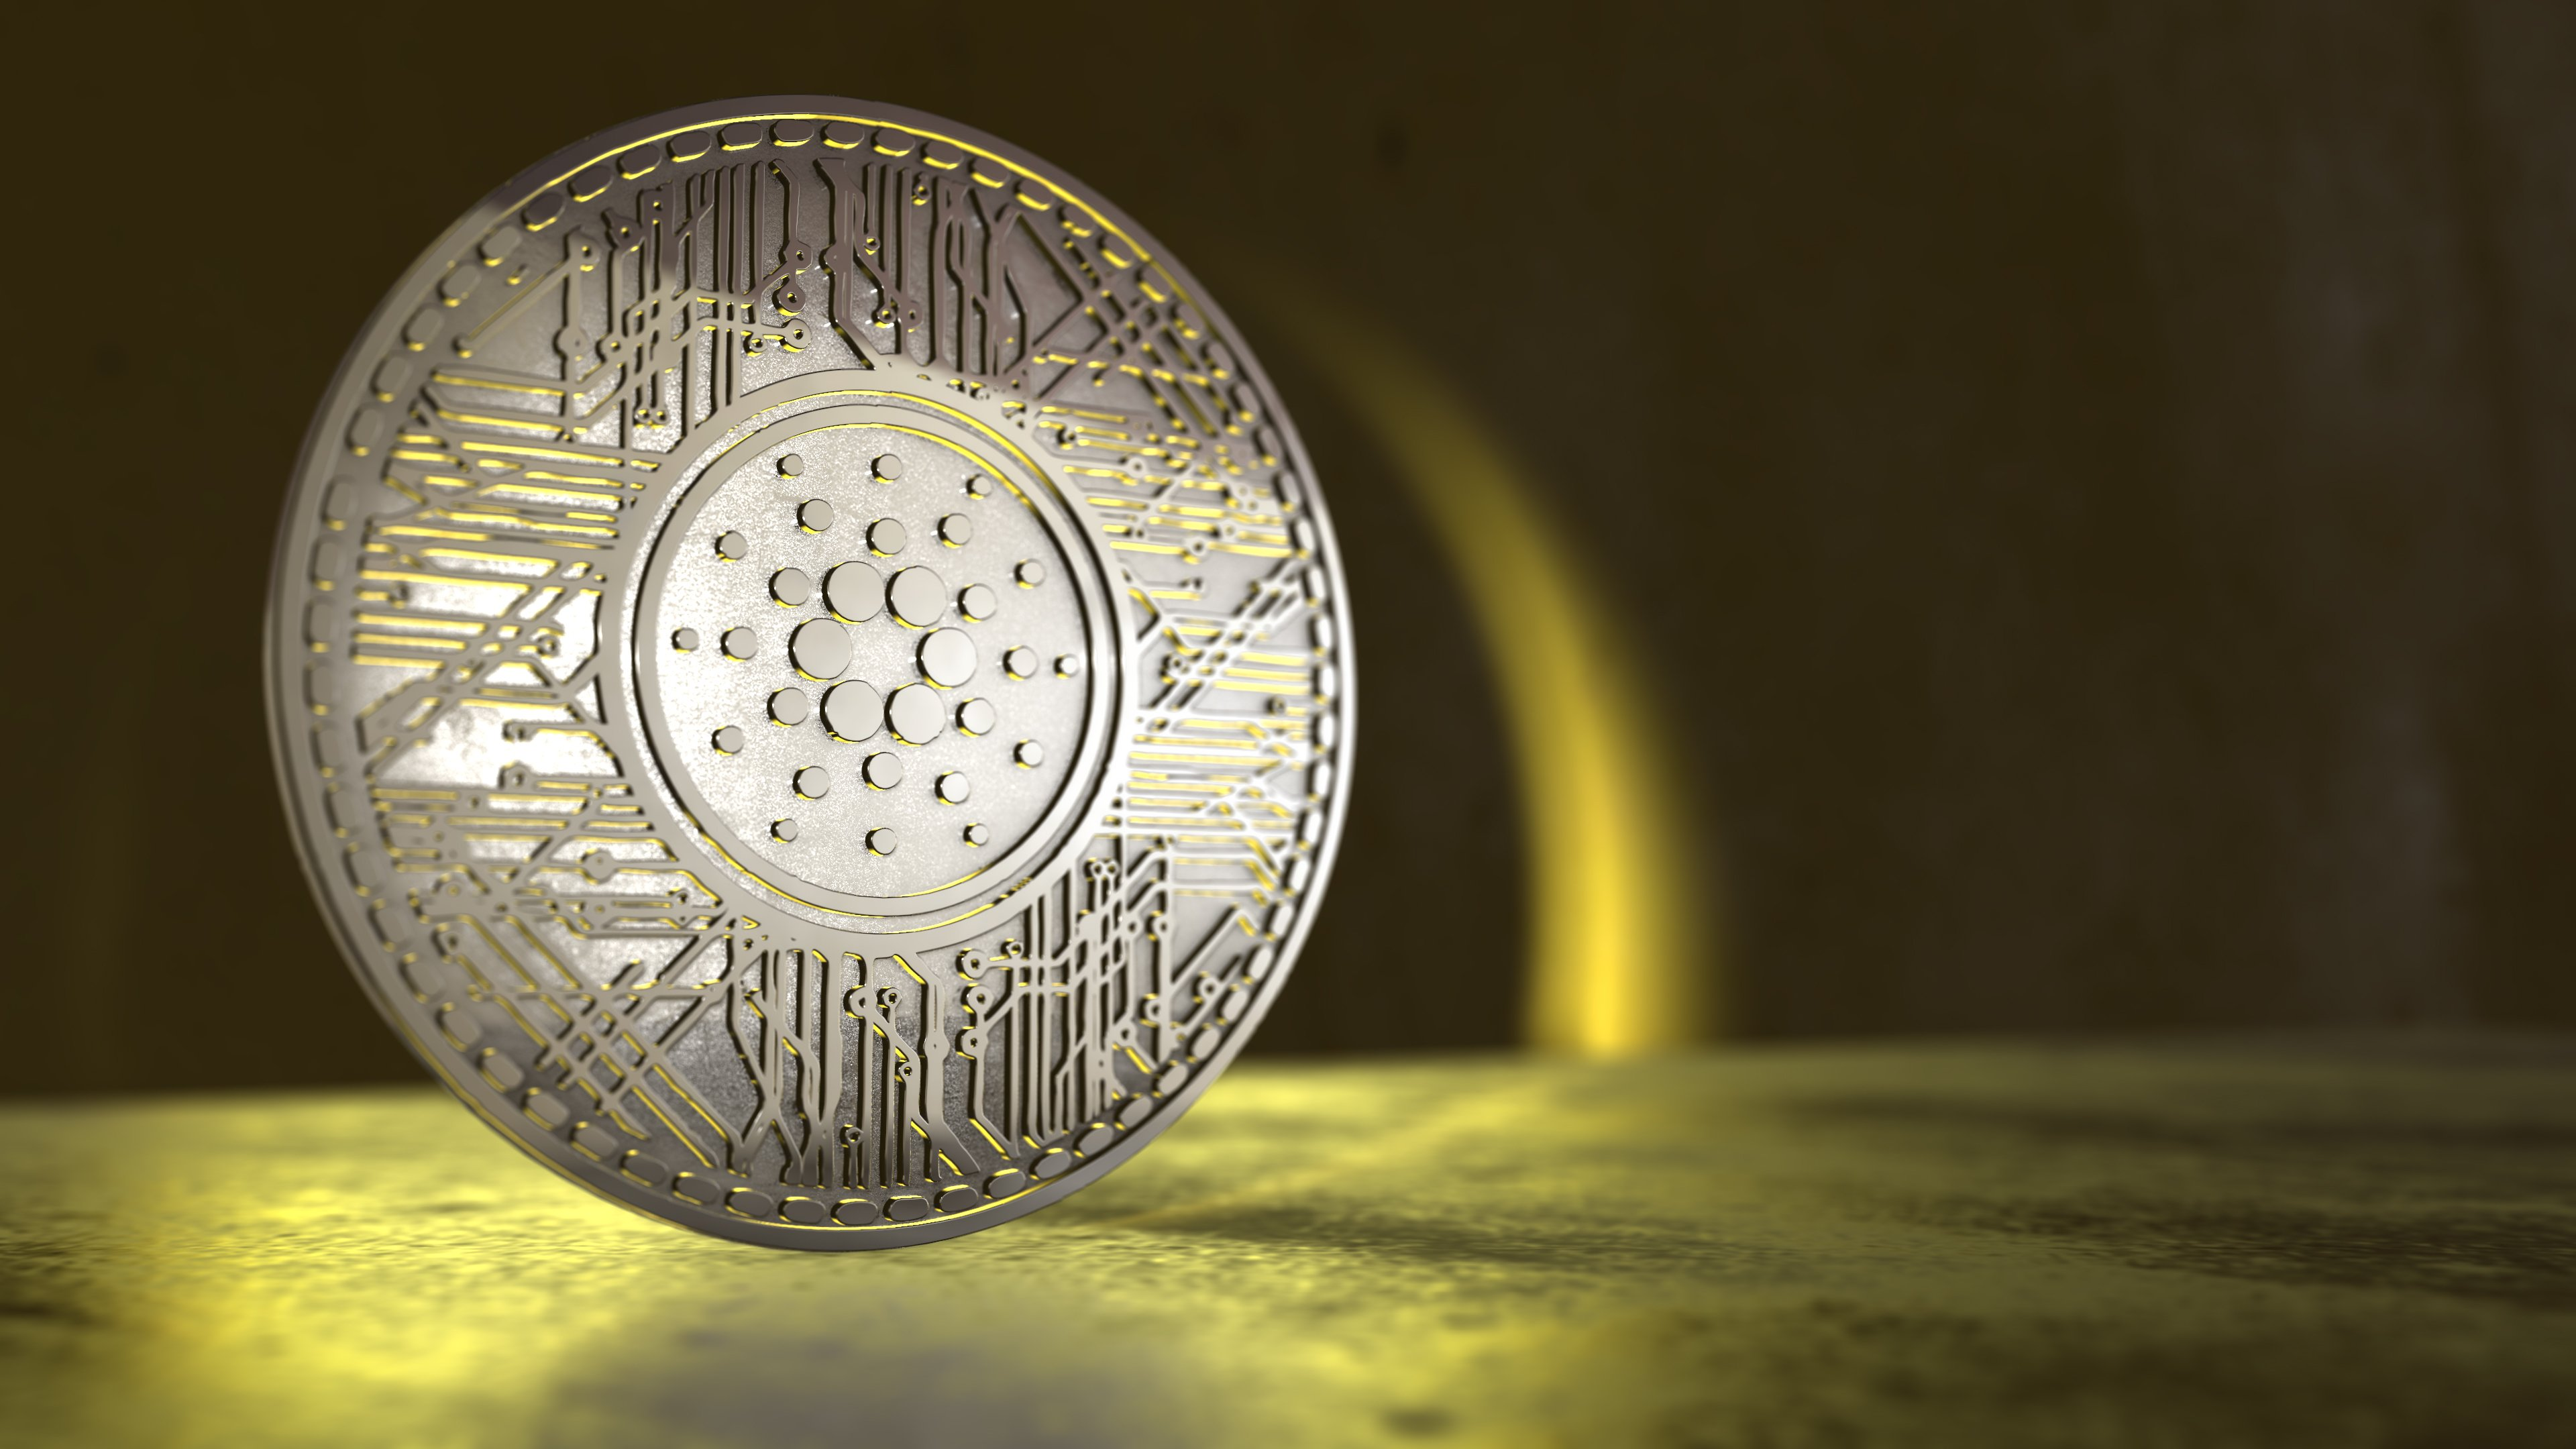 Cardano Coin cryptocurrency 3D Render